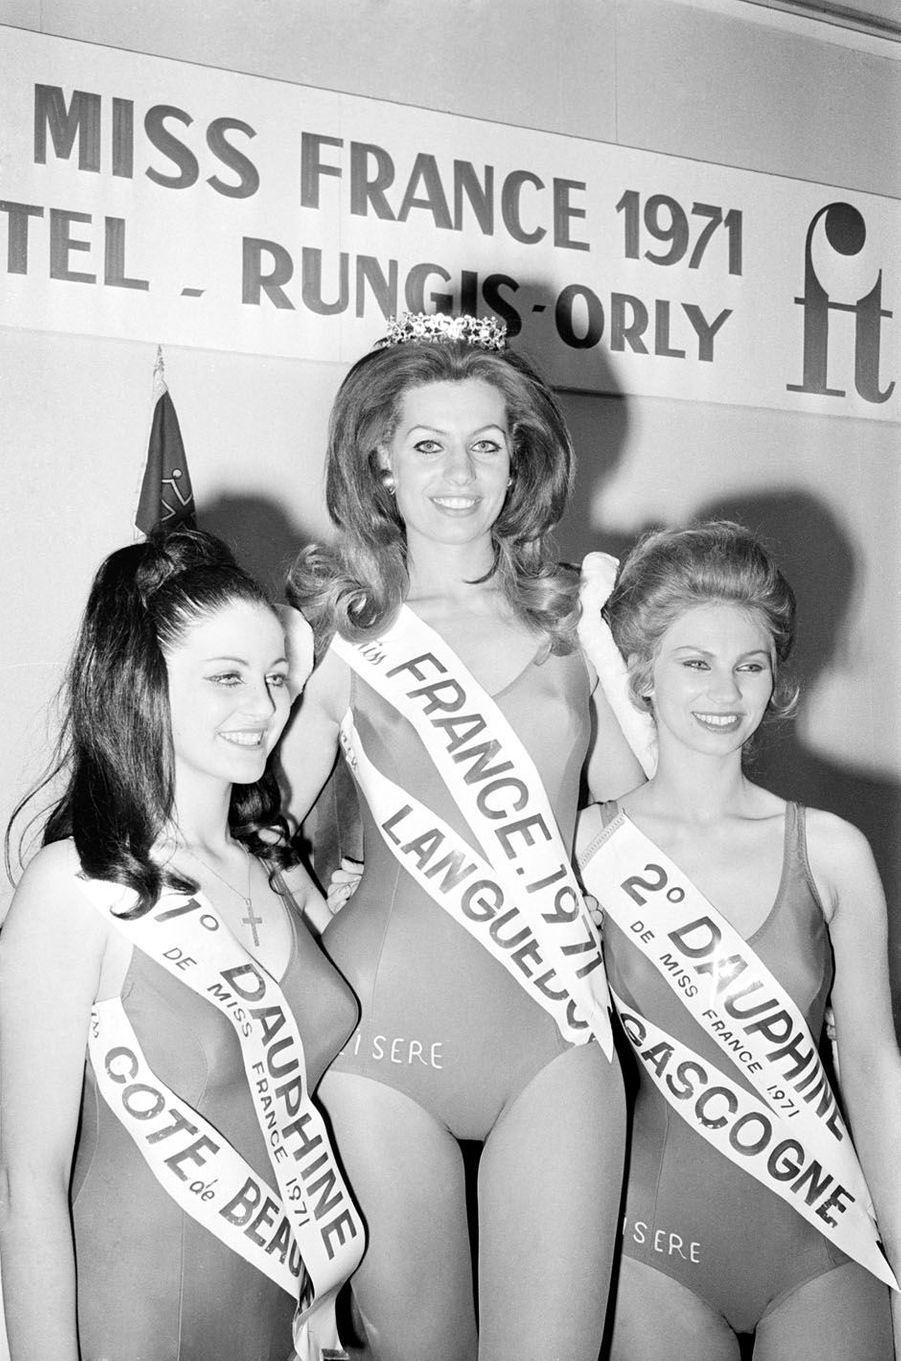 Myriam Stocco,Miss France 1971